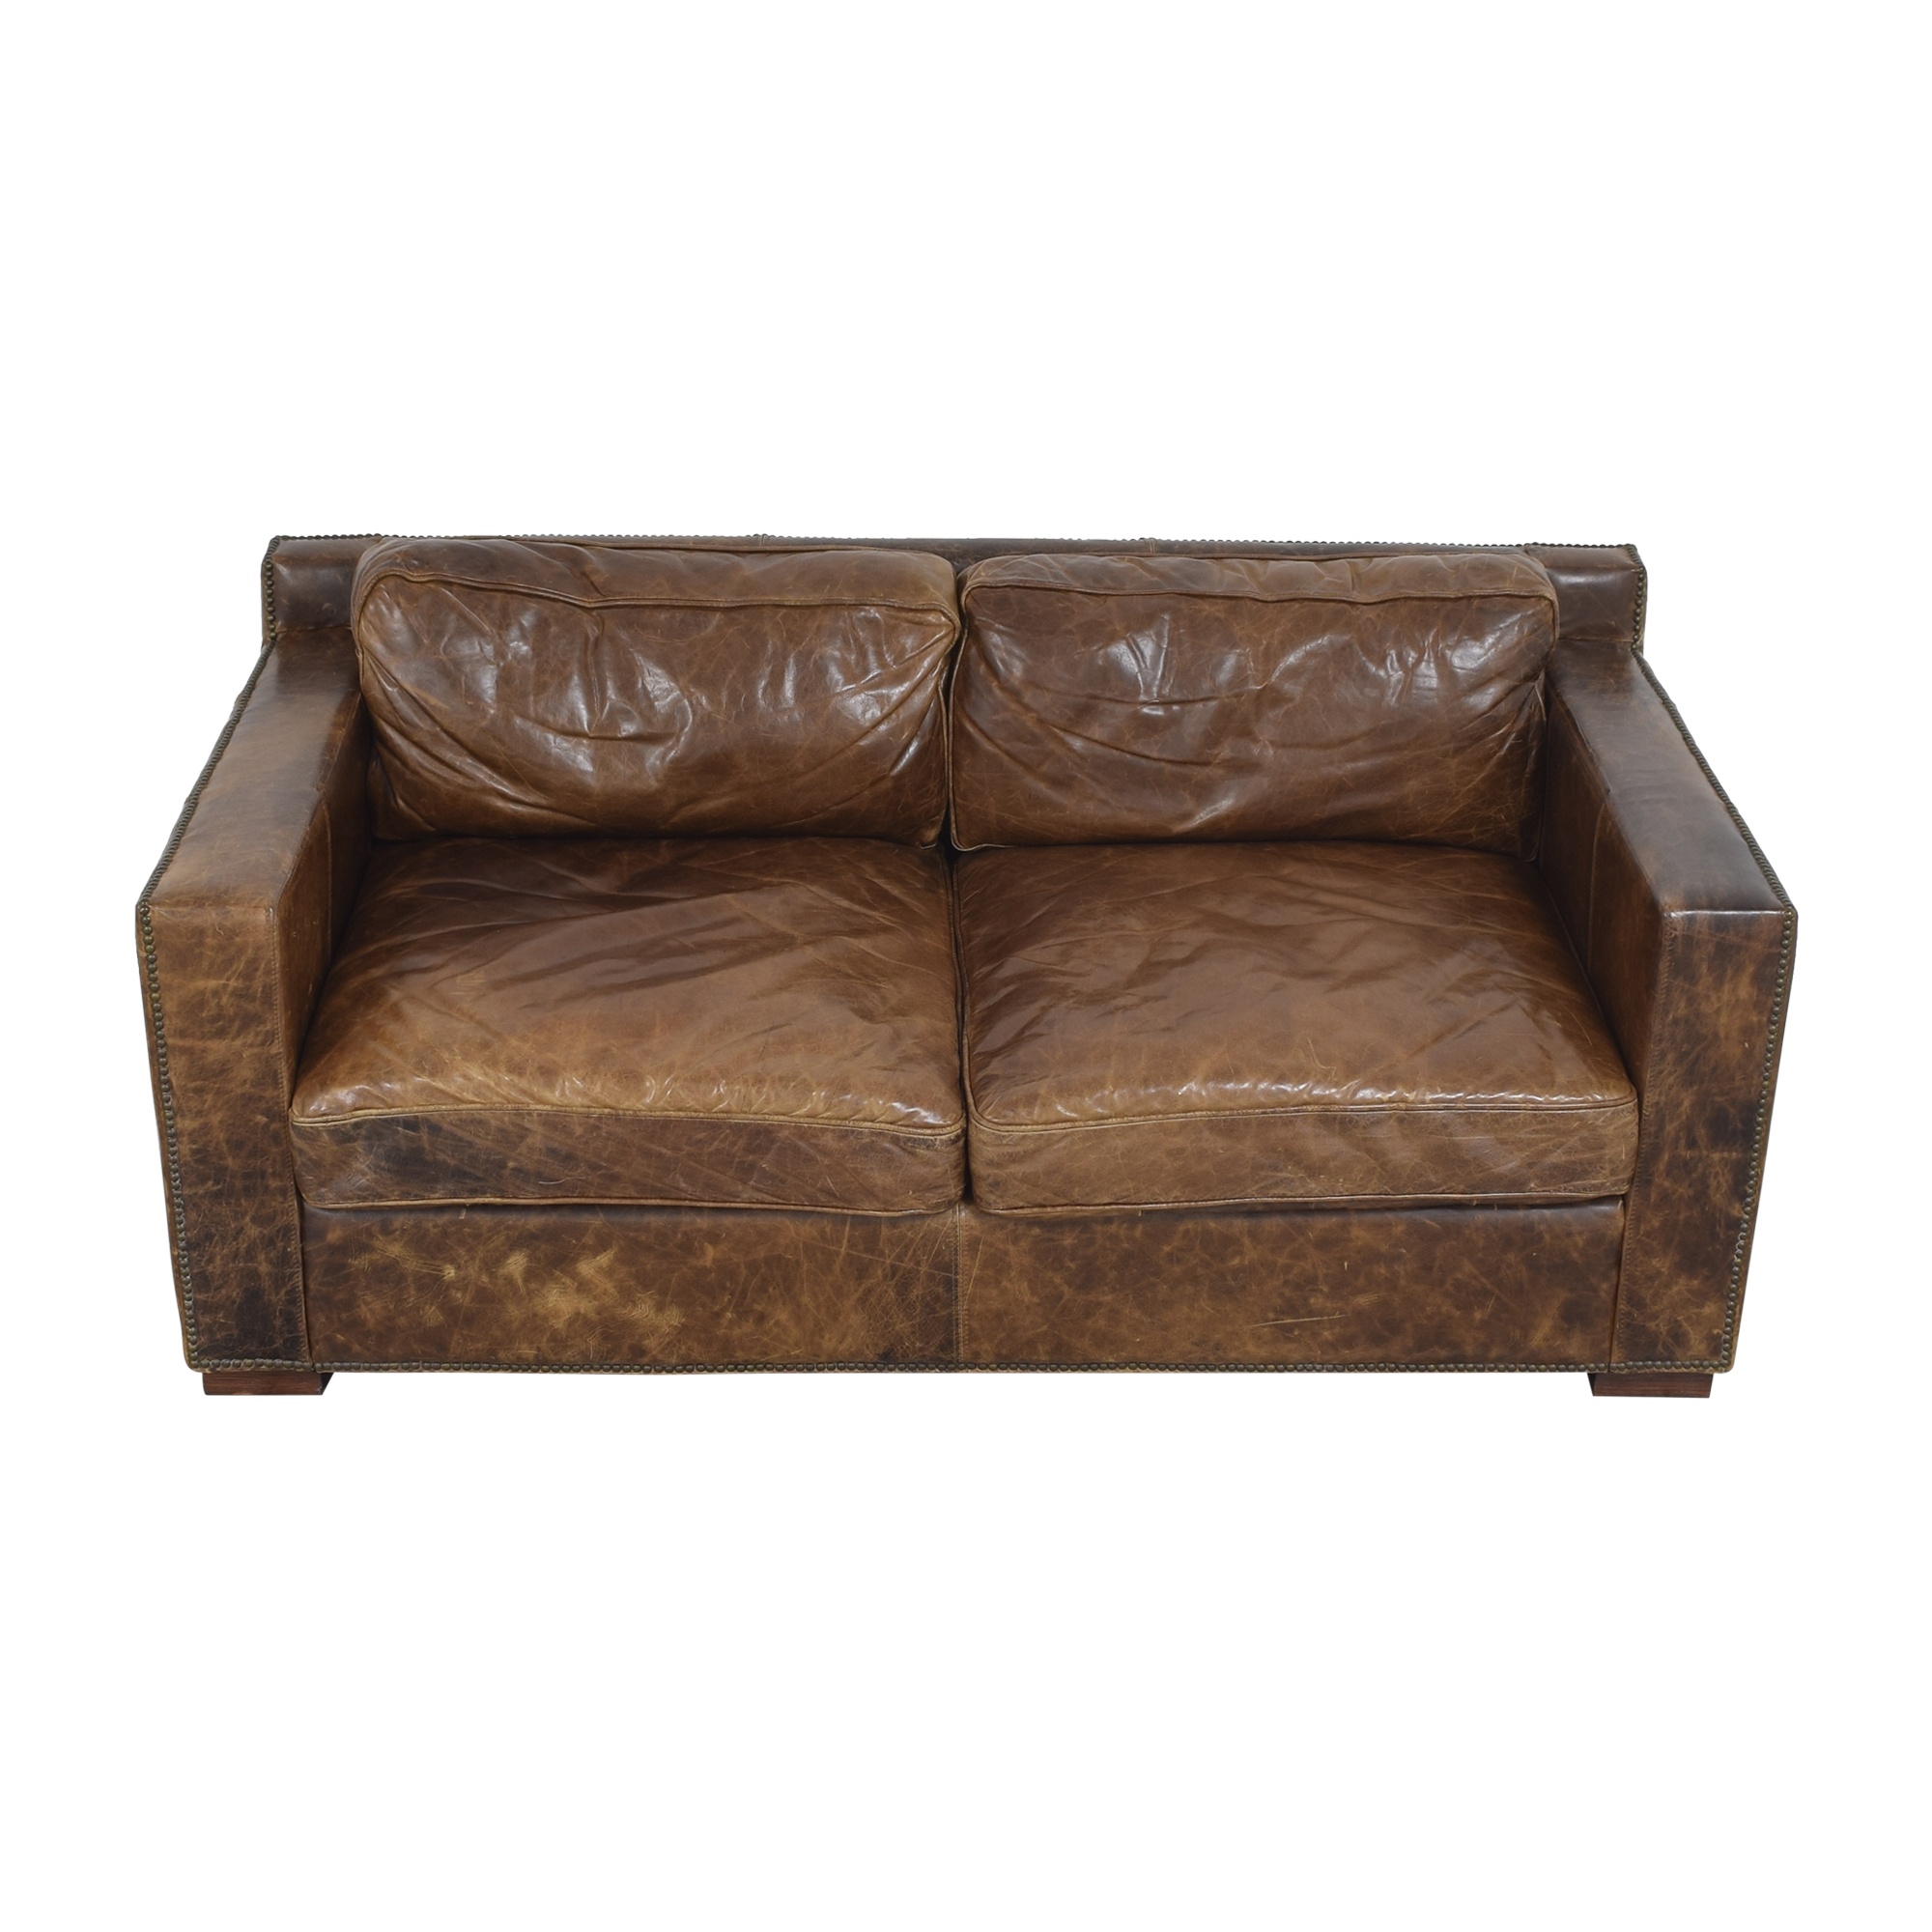 Restoration Hardware Restoration Hardware Collins Sofa with Nailheads dimensions